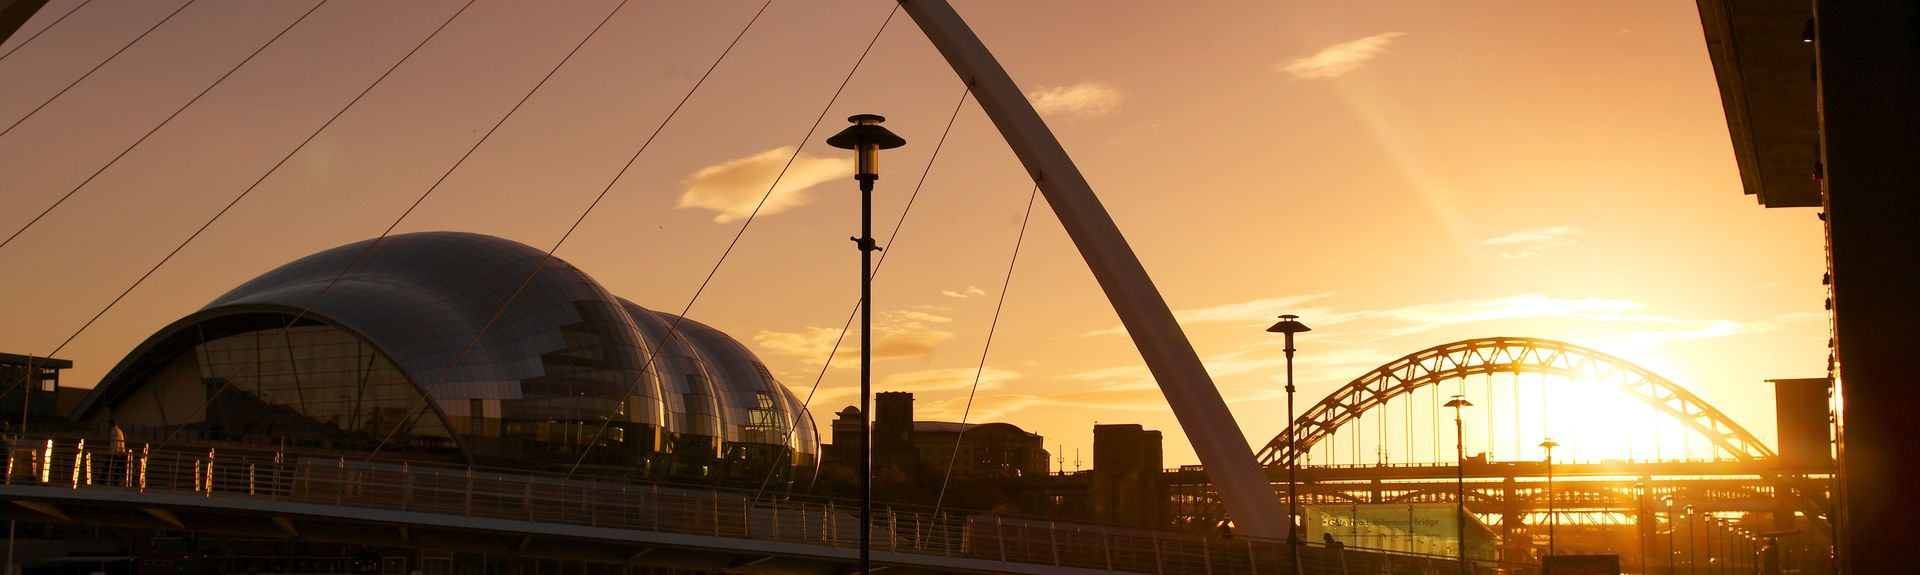 Newcastle upon Tyne, Inghilterra, Regno Unito